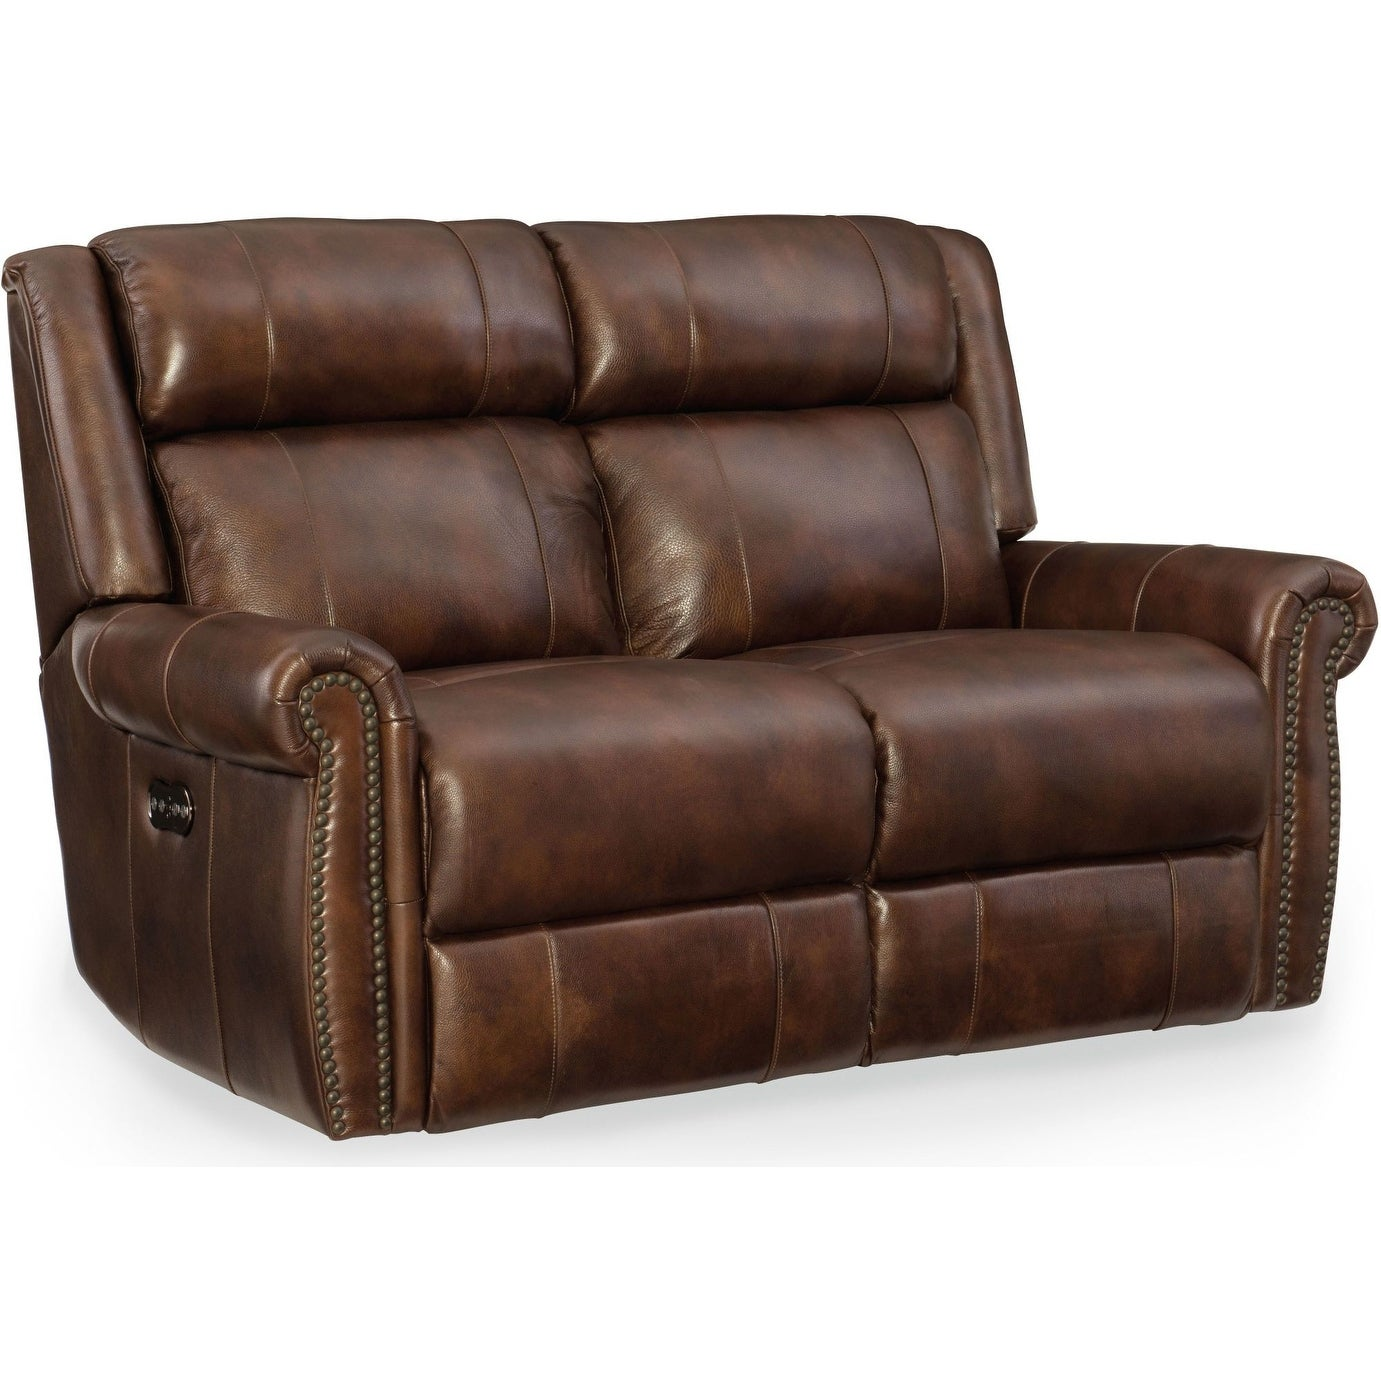 Stupendous Hooker Furniture Ss461 P2 188 61 3 4 Wide Leather Loveseat From The Esme Collection Sumatra N A Machost Co Dining Chair Design Ideas Machostcouk